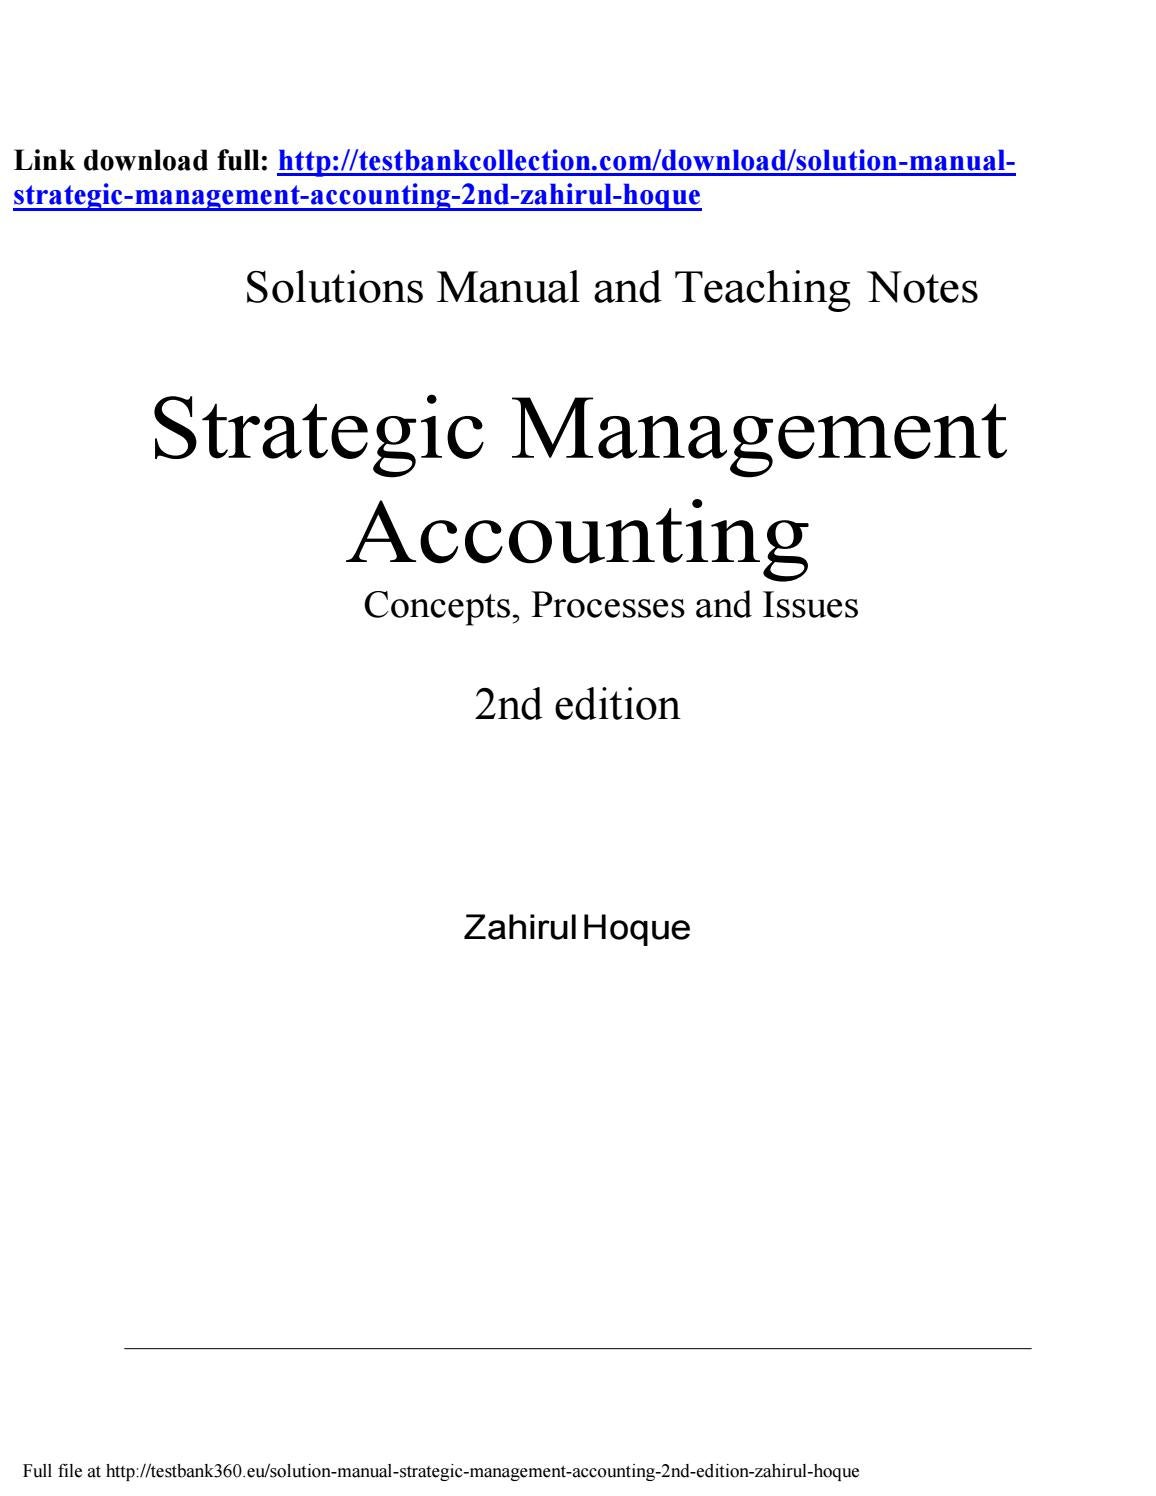 Solution manual strategic management accounting 2nd zahirul hoque by analy  james - issuu